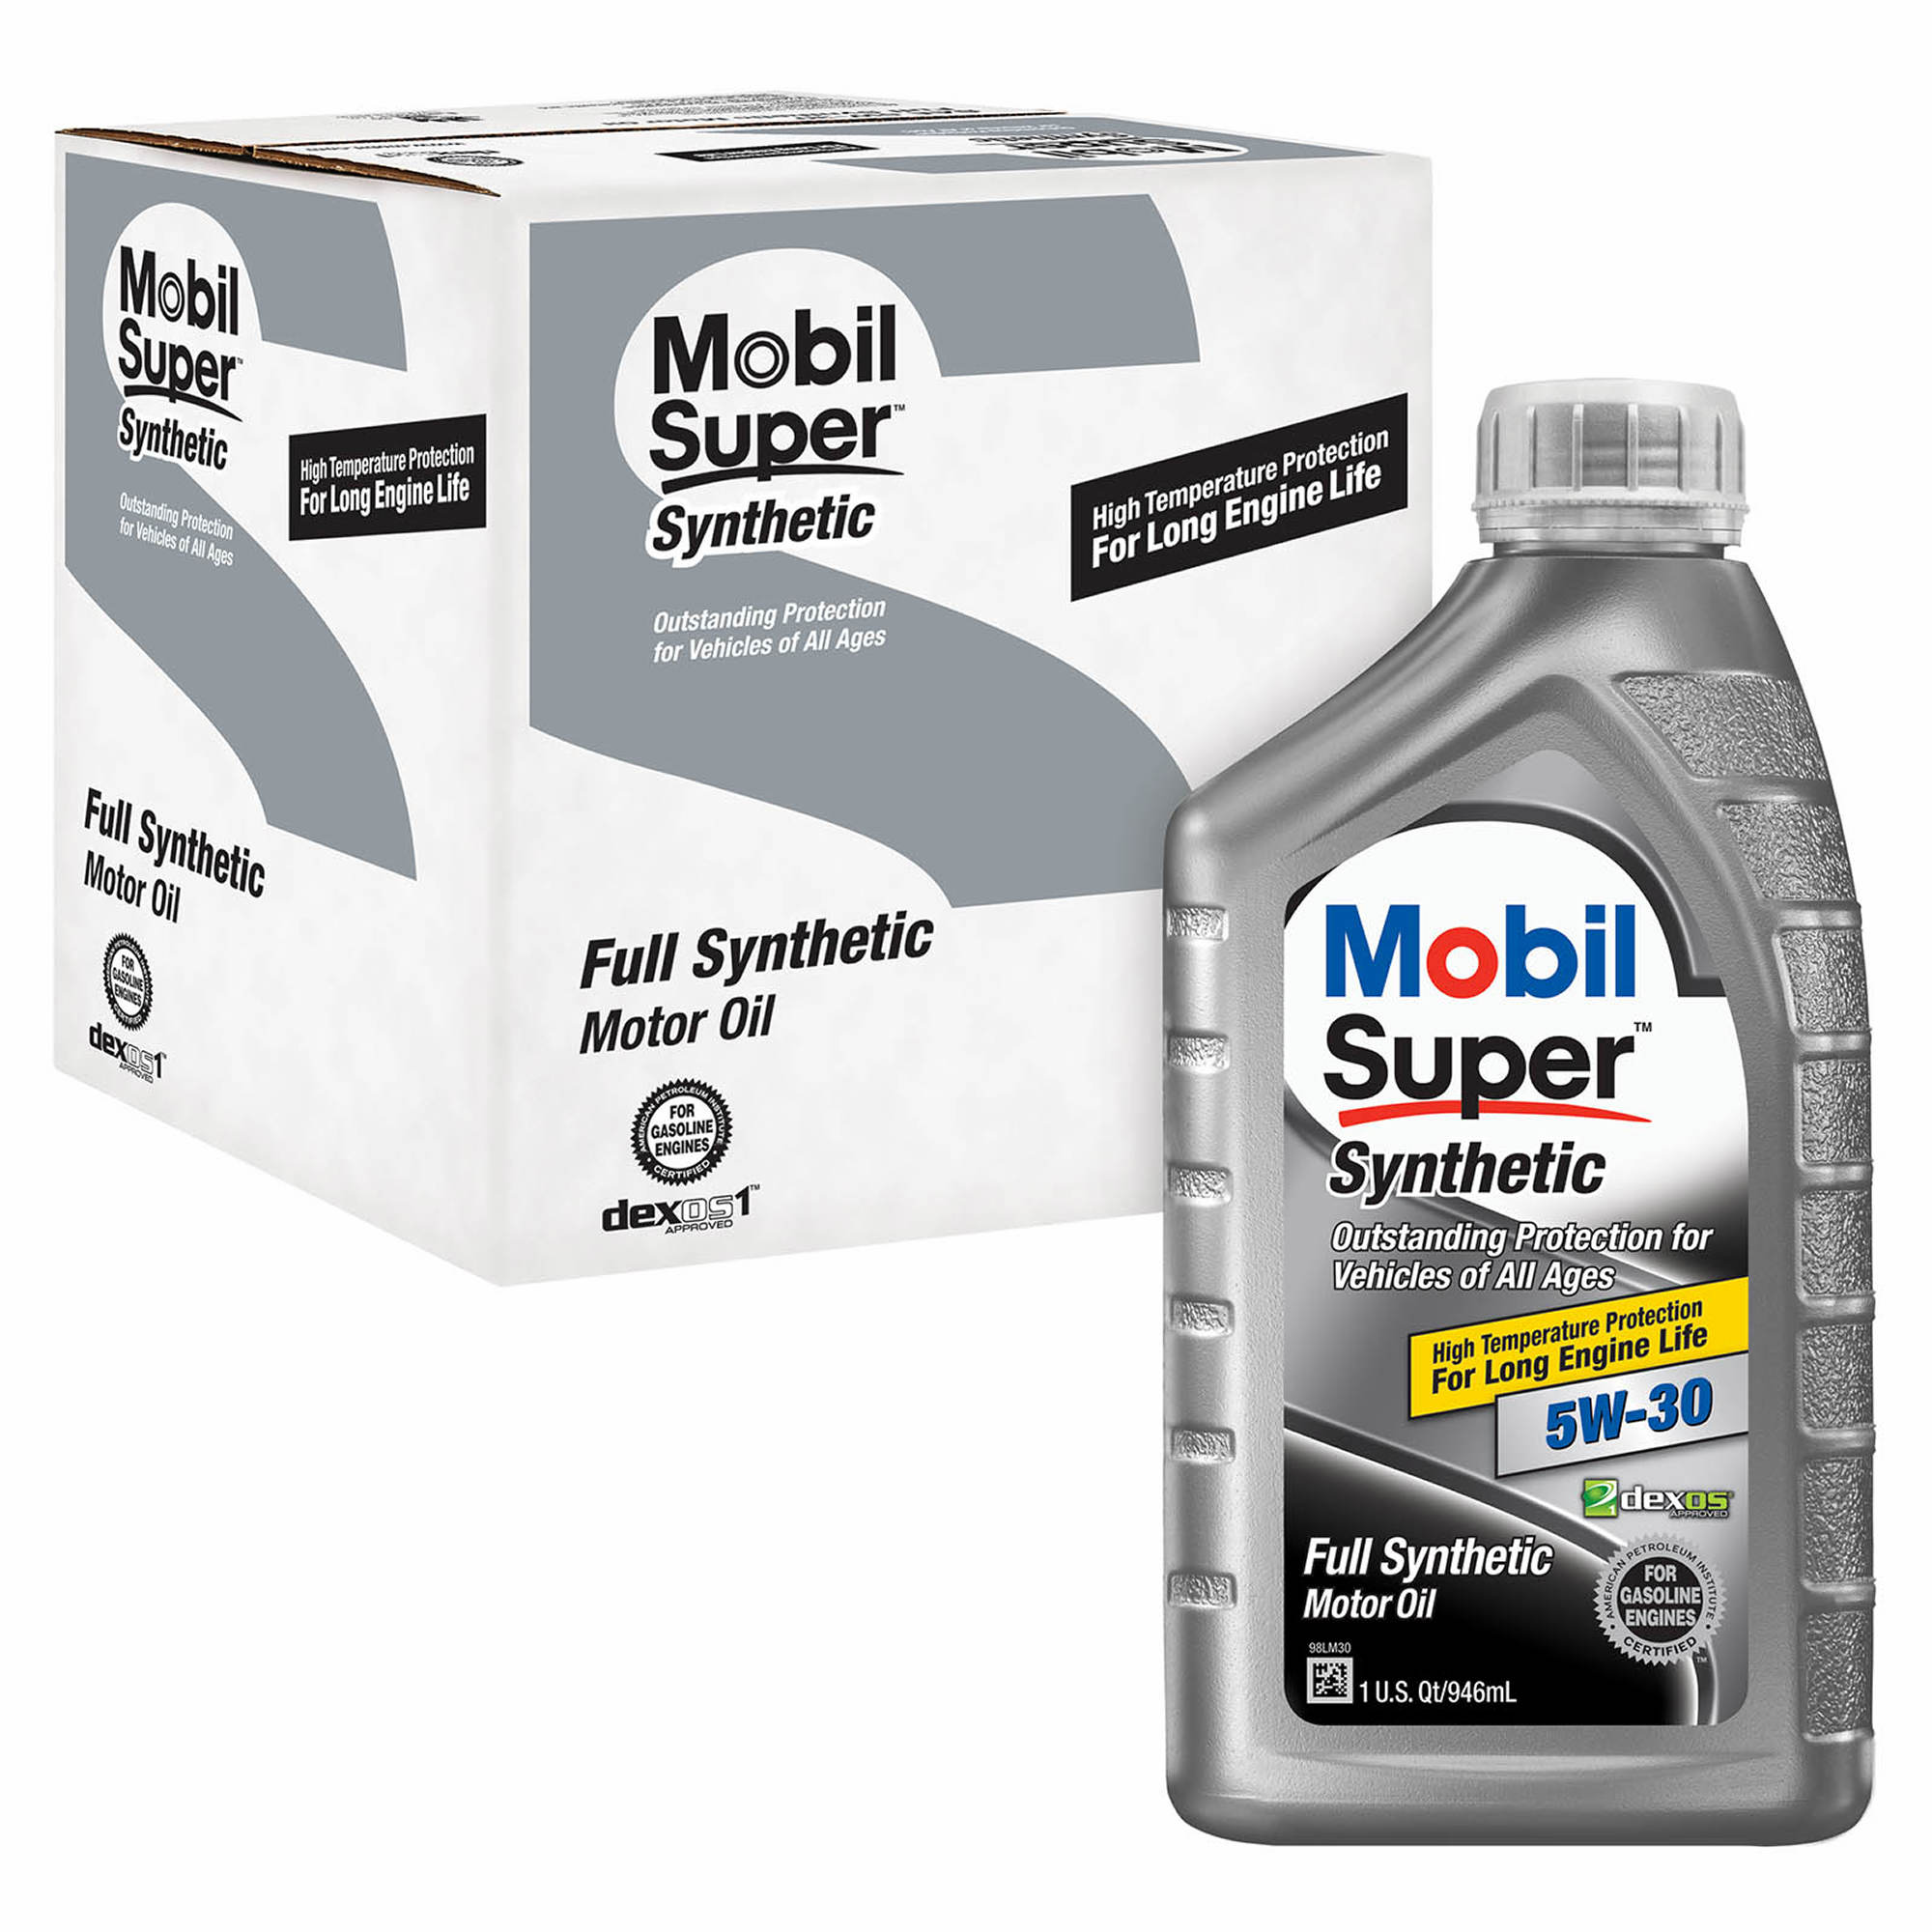 Mobil 5w30 Super Synthetic Motor Oil 6 Pk 1 Qt Bj 39 S